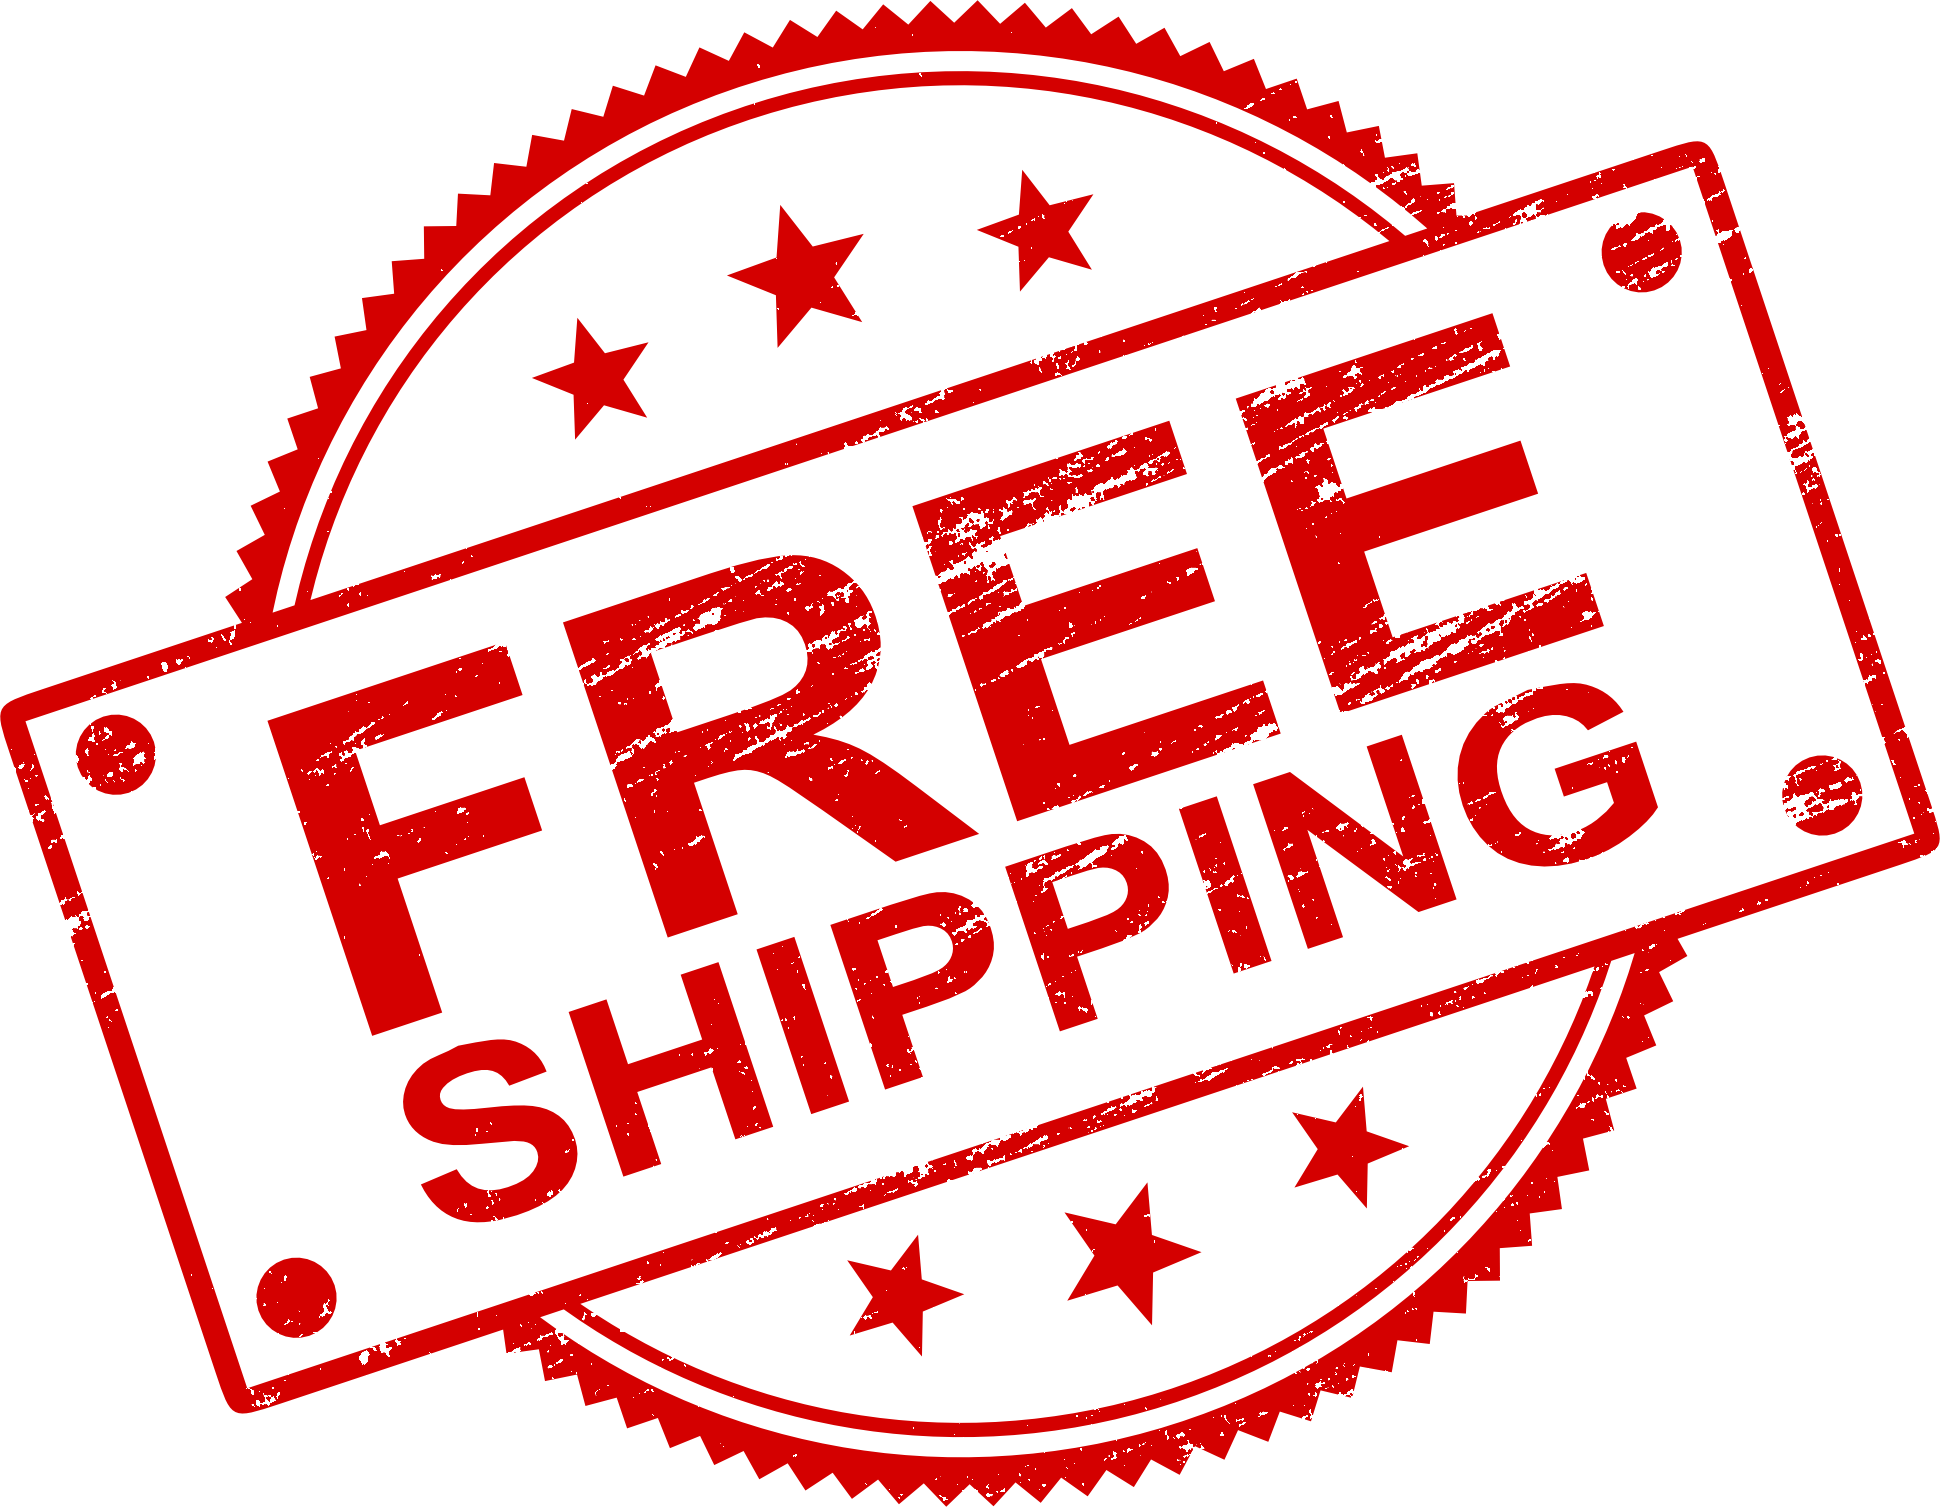 4 Free Shipping Stamp Vector (PNG Transparent, SVG).